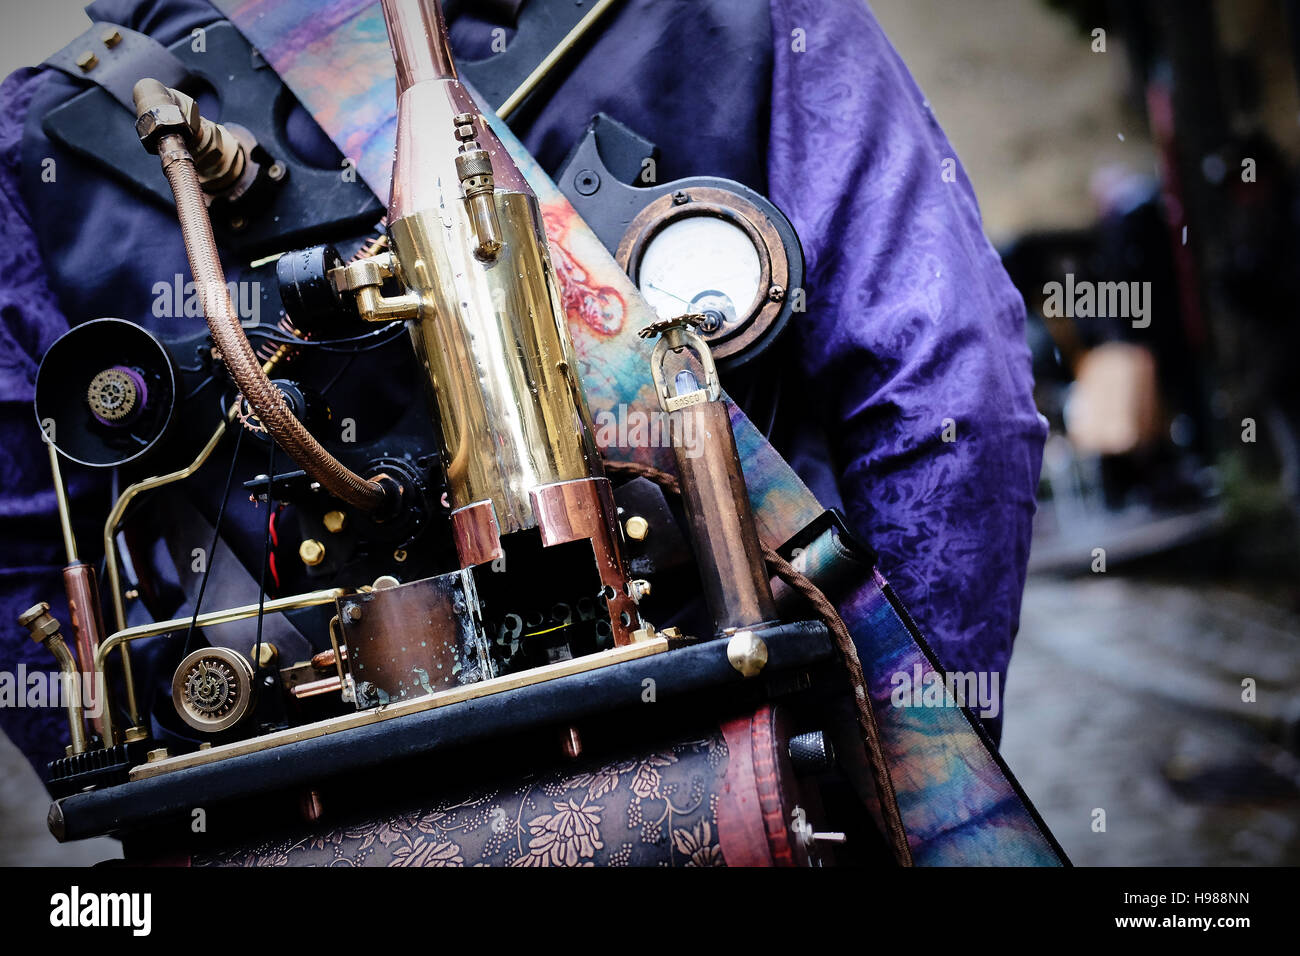 A backpack of steam powered apparatus worn by a steampunk enthusiast at an event - Stock Image